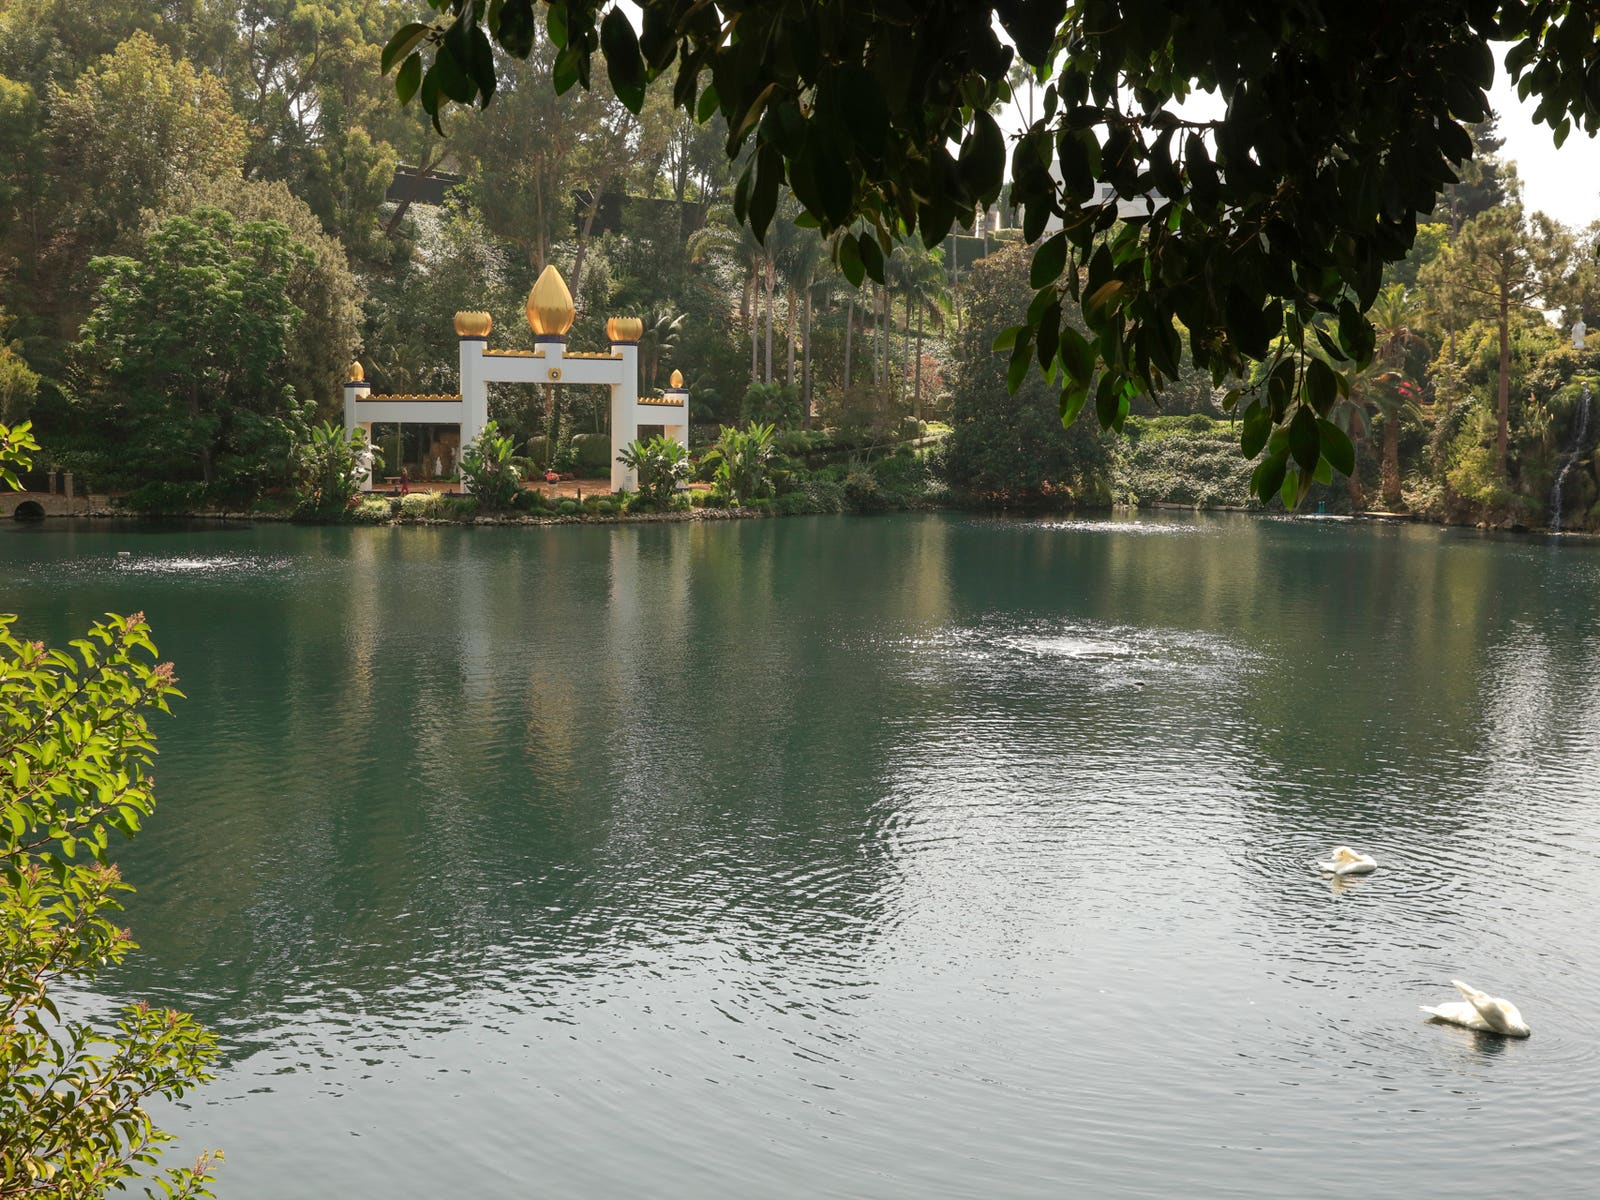 Golden Lotus Temple and swans at the Self Realization Fellowship Lake Shrine